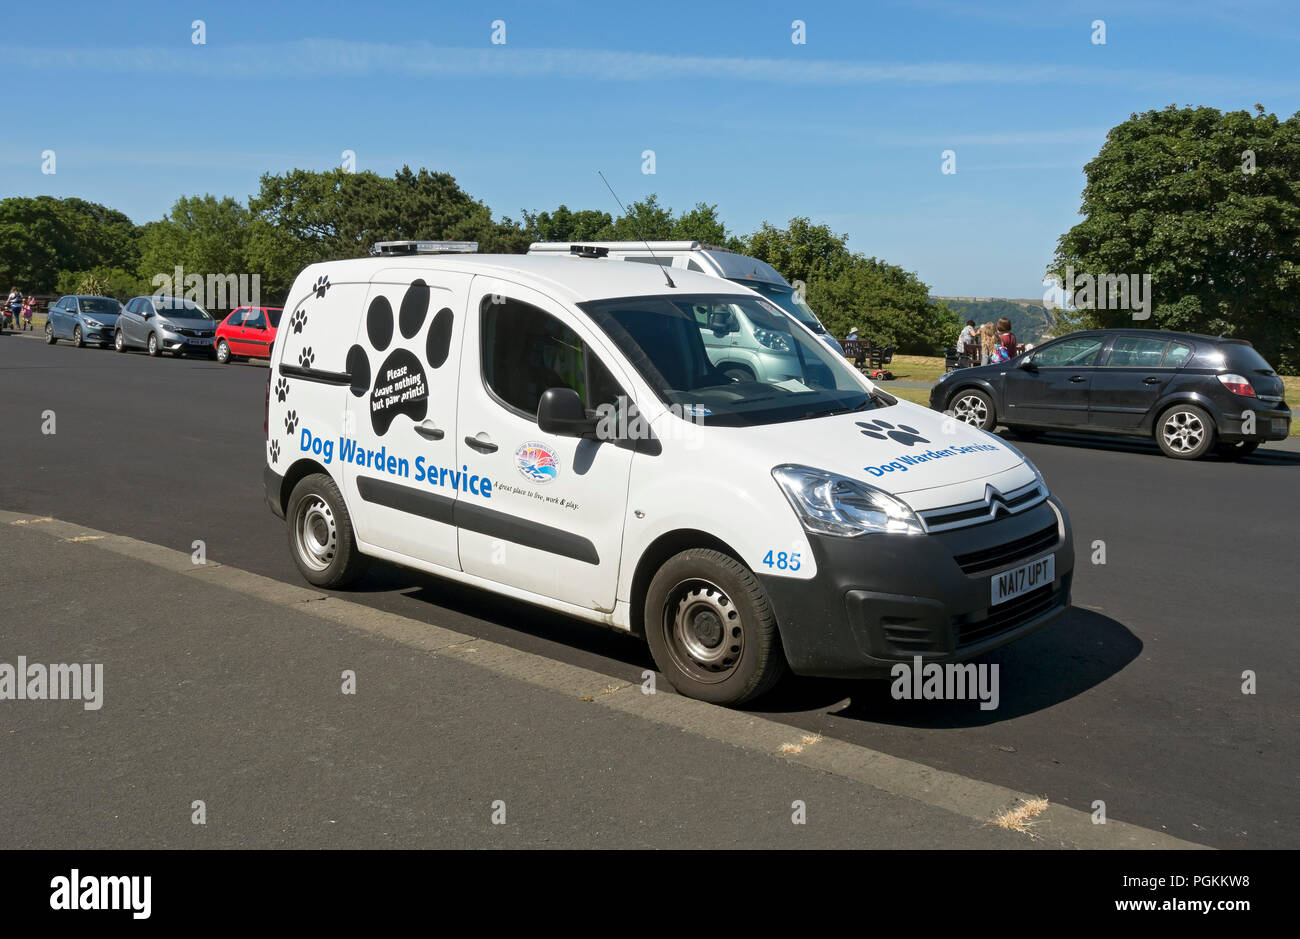 Dog warden service van Scarborough North Yorkshire England UK United Kingdom GB Great Britain - Stock Image